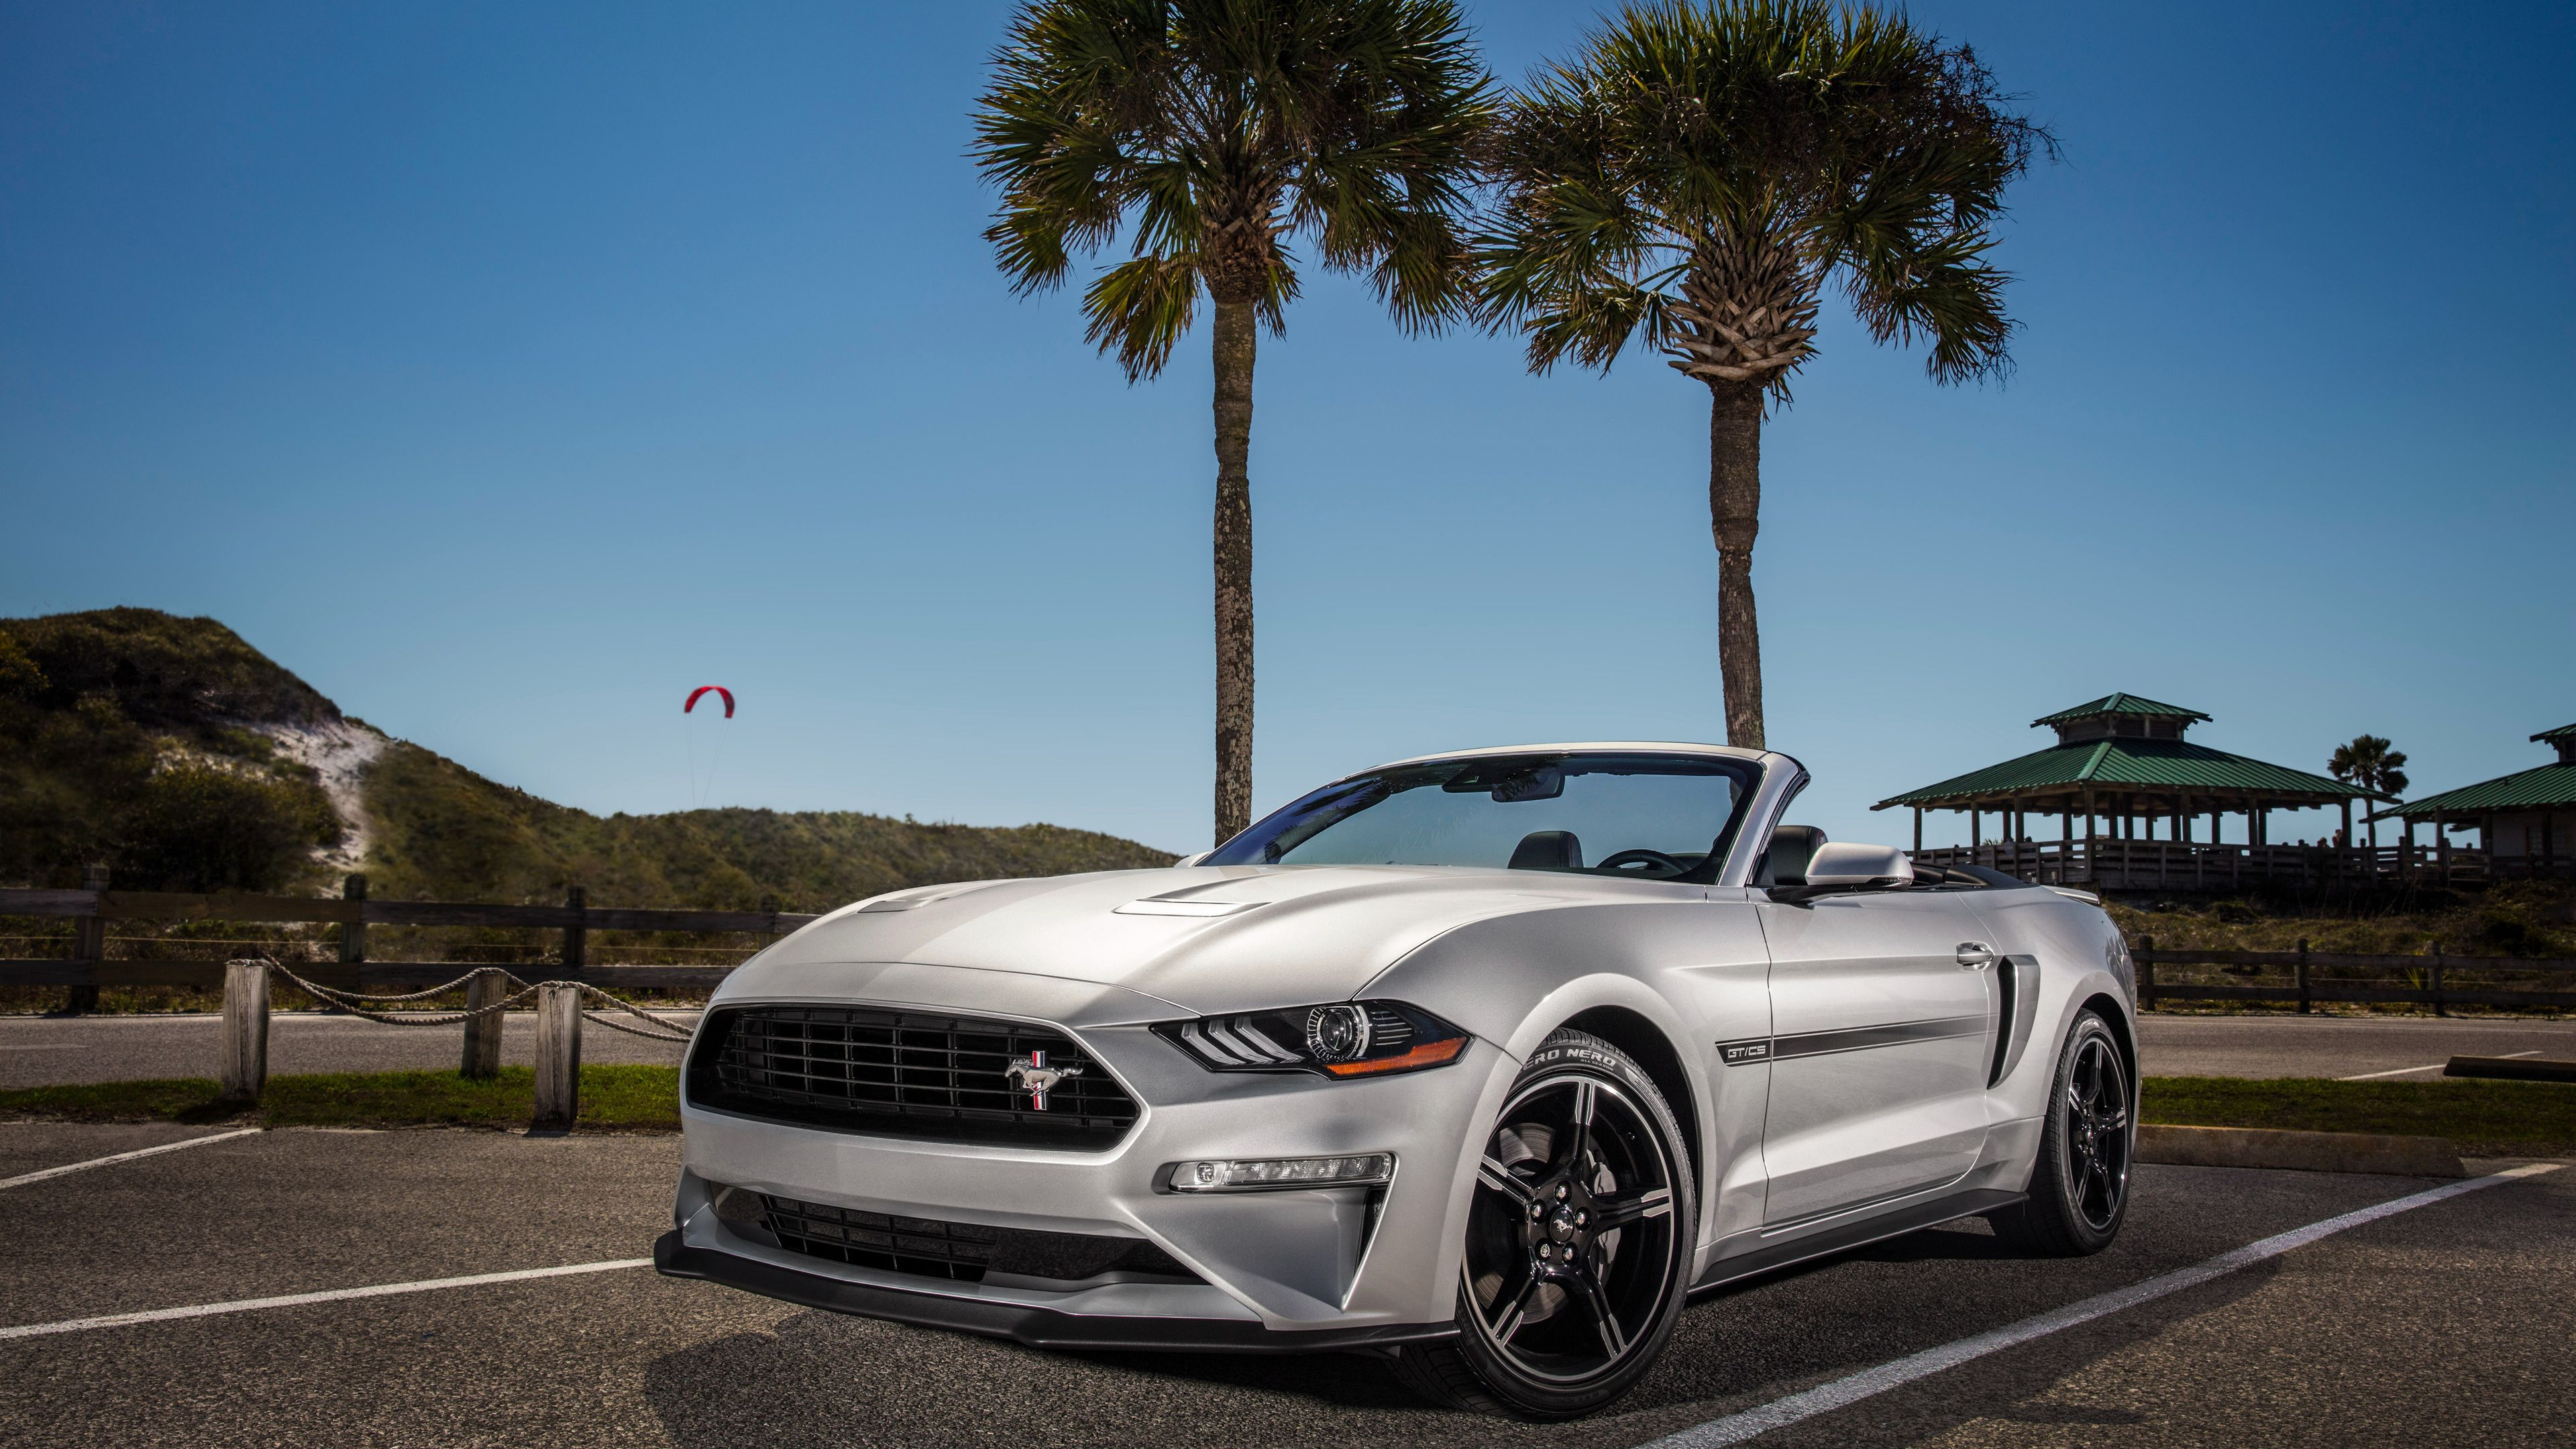 Wallpaper 4k 2019 Ford Mustang Gt Convertible 2019 Cars Wallpapers